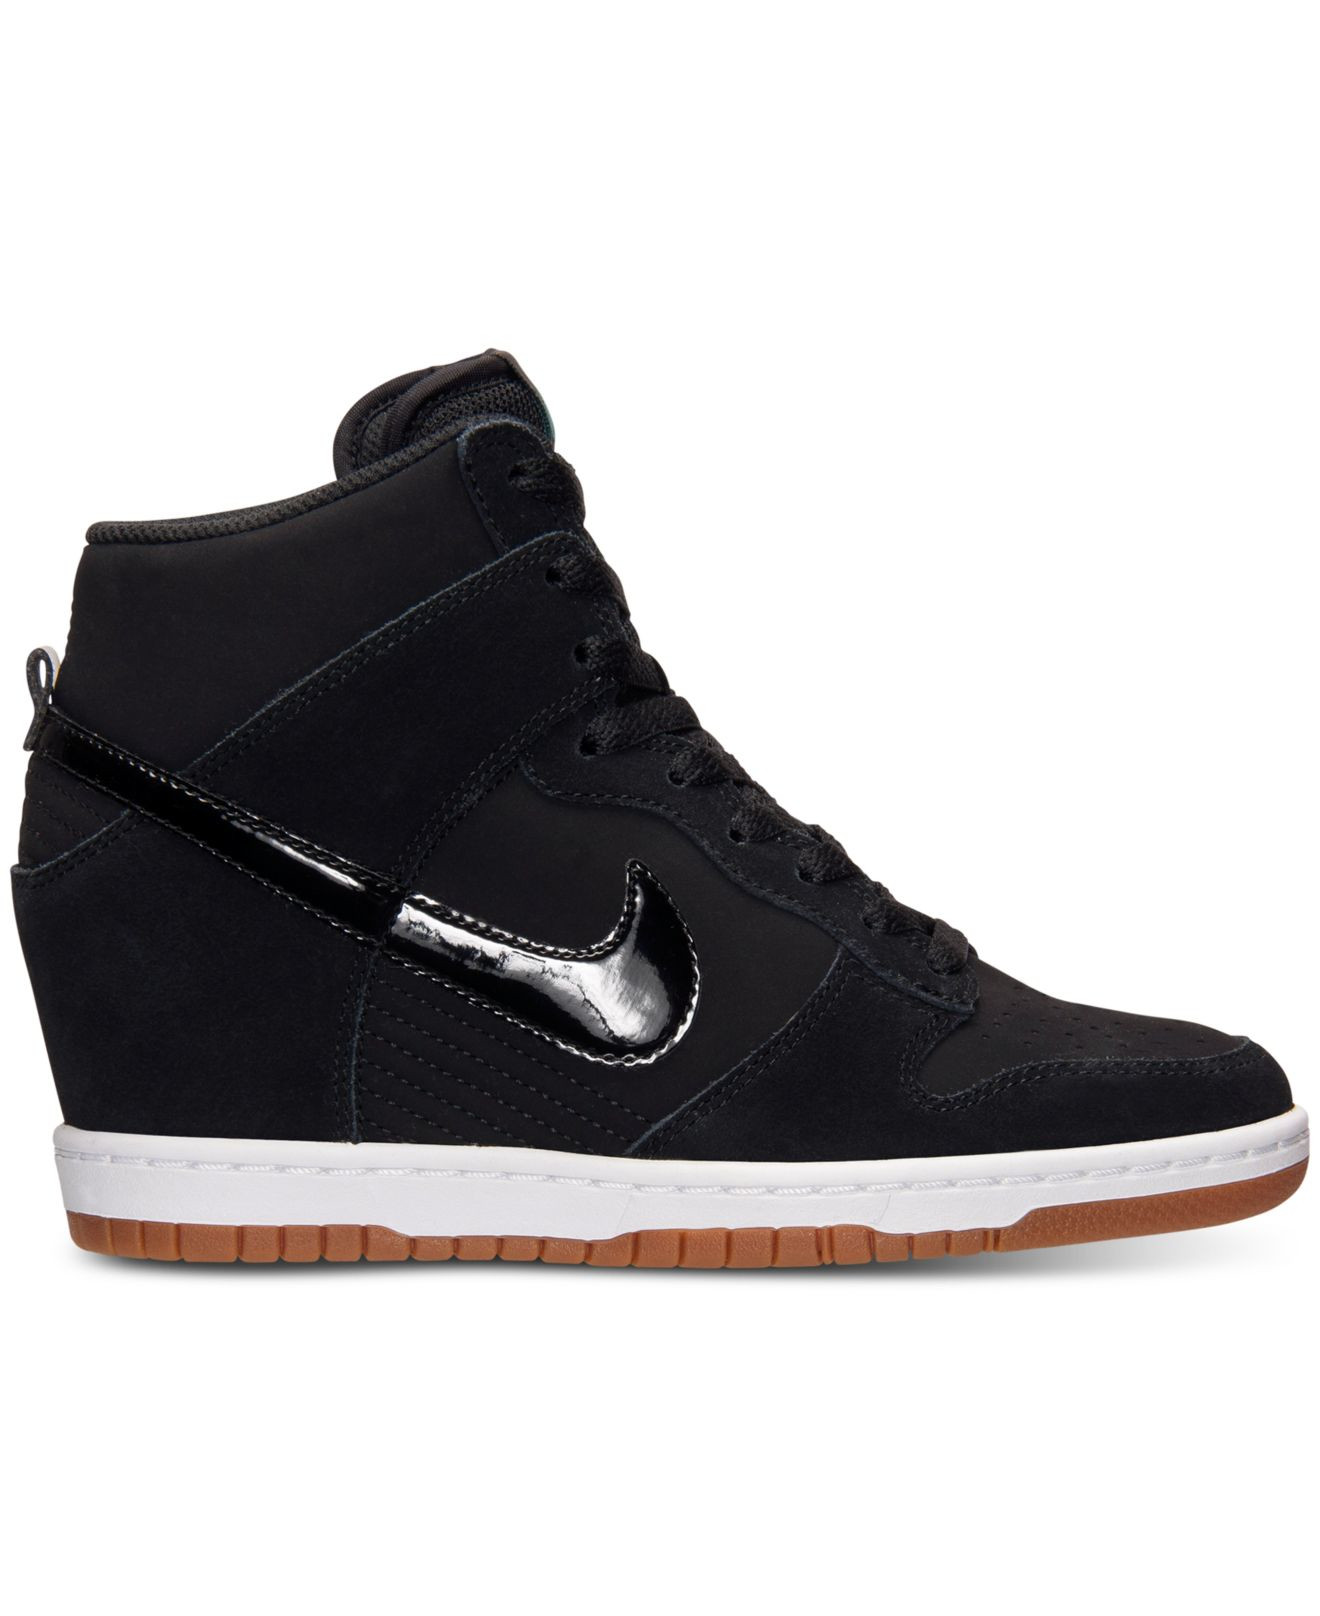 82f1173006e0 Previously sold at Macys · Womens Nike Dunk Sky Hi . ...